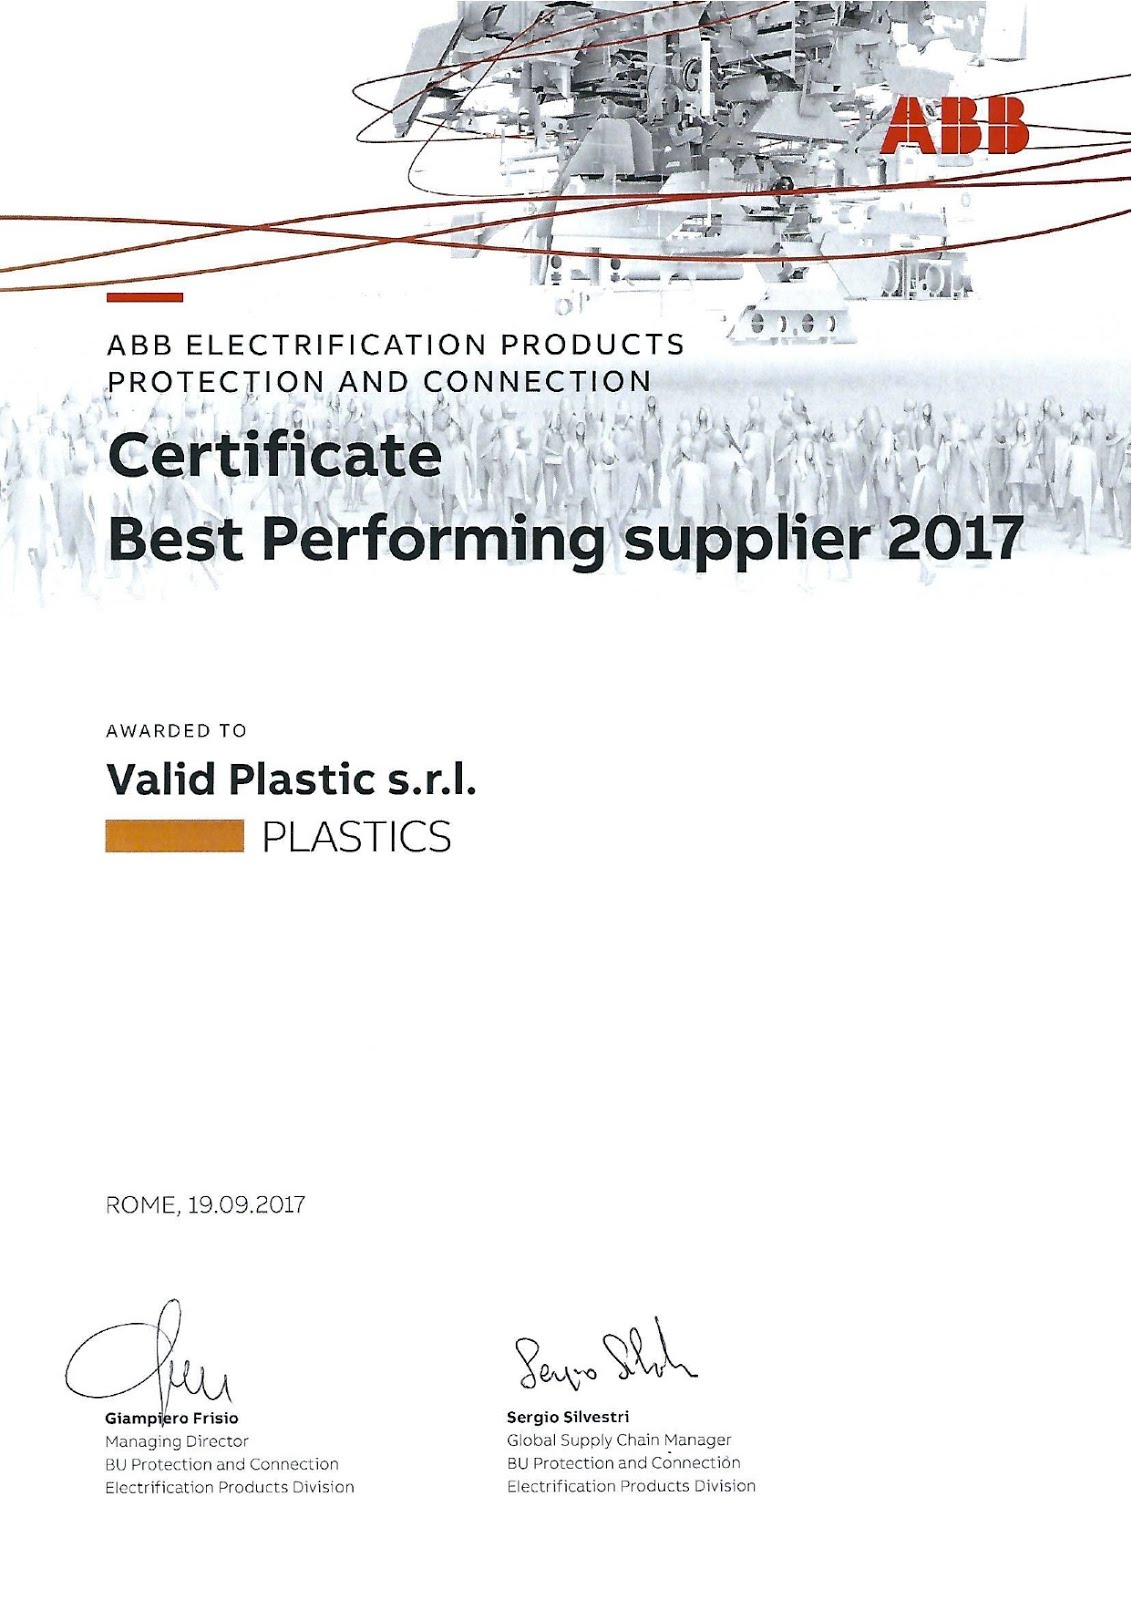 CERTIFICATE BEST PERFORMING SUPPLIER 2017